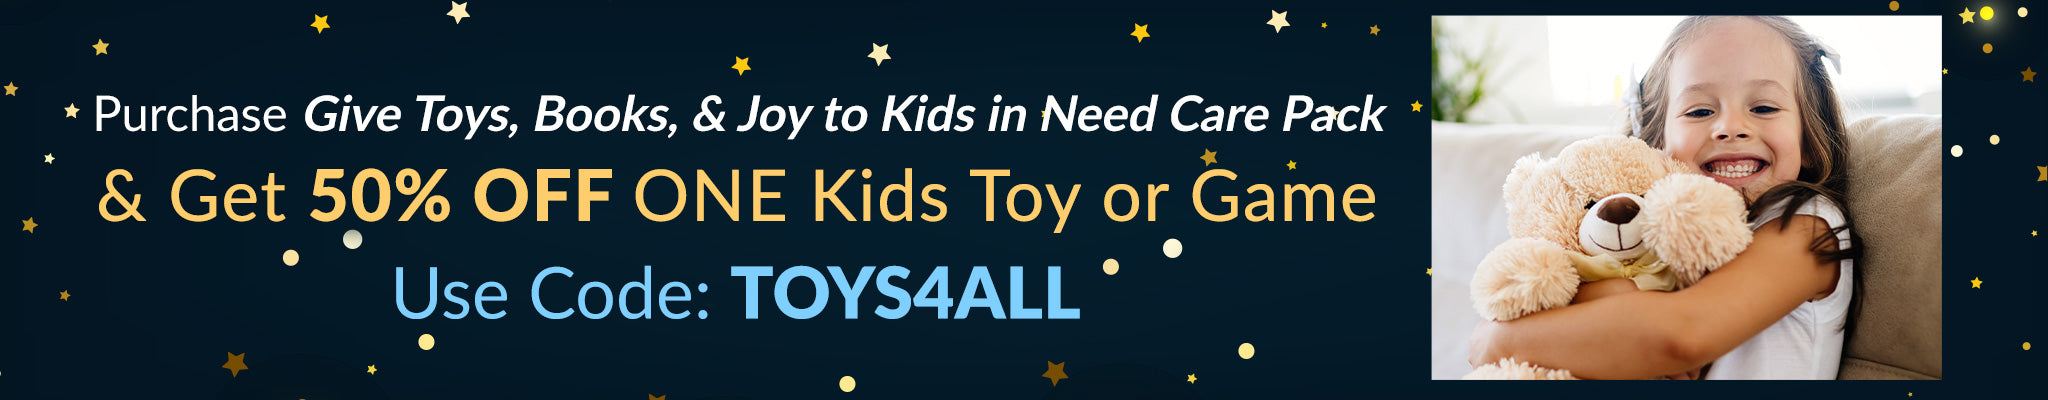 Give Toys, Books, & Joy To Kids In Need, Get 50% Off 1 Kids Toys & Games Item | TOYS4ALL